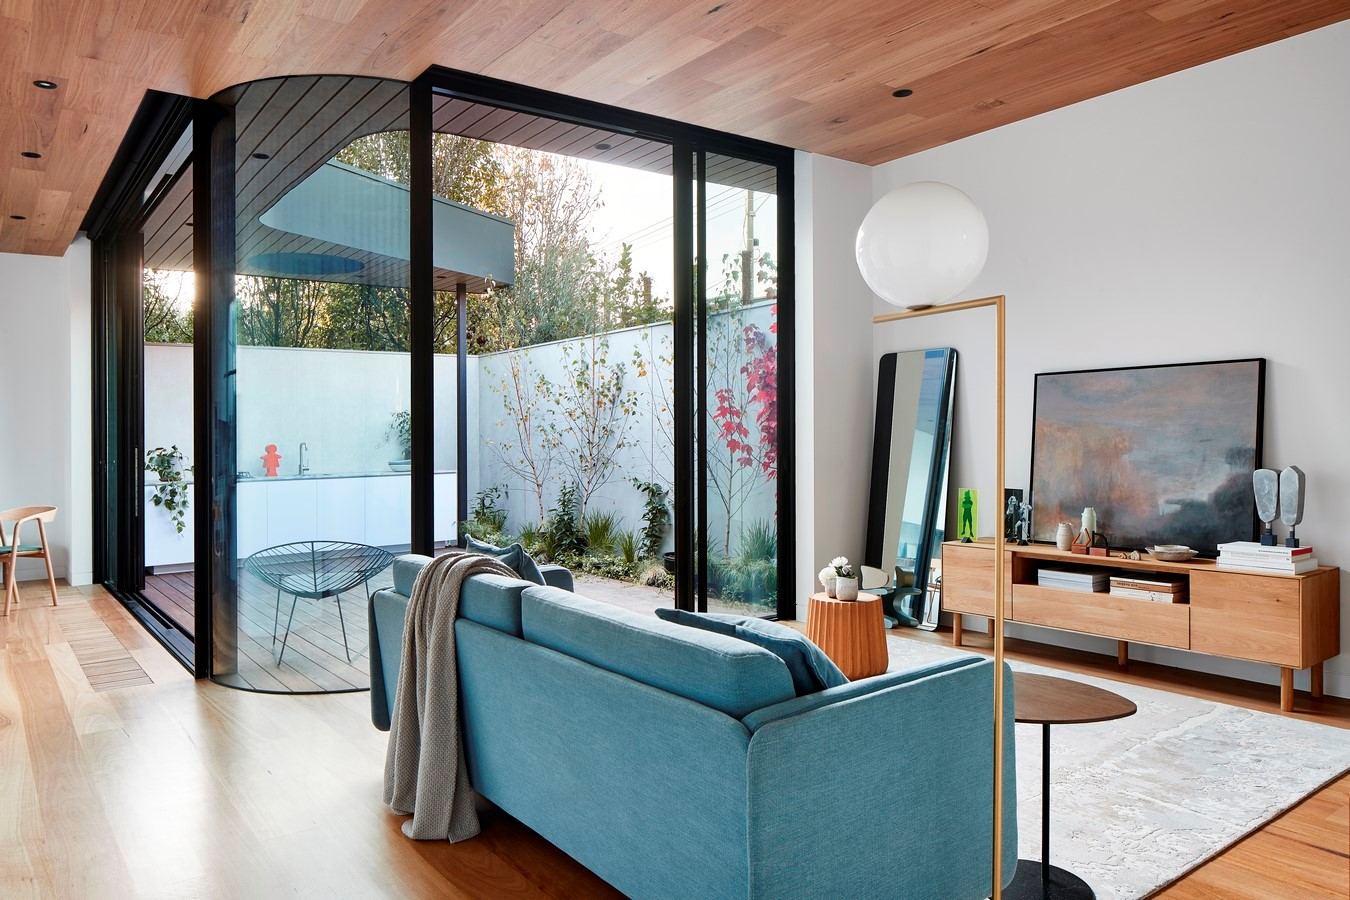 Envelop House is an innovative exploration of single level contemporary inner bayside living.: Sheet 3